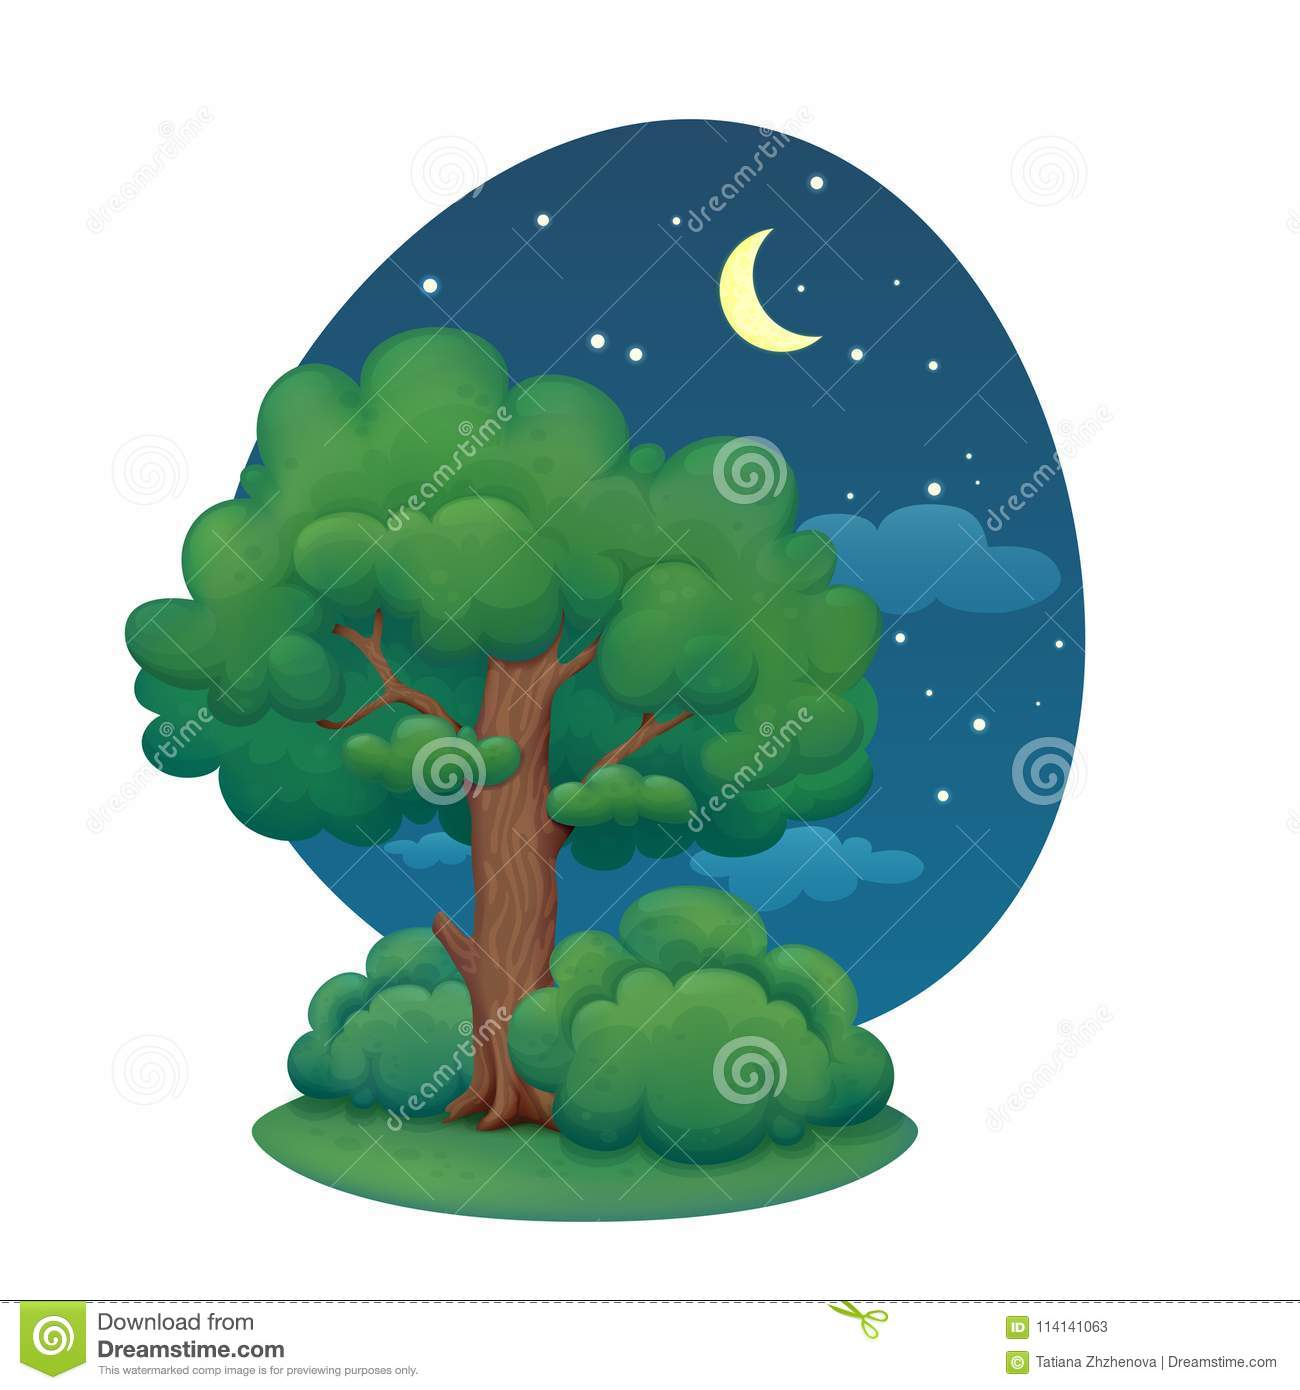 Cartoon Tree With Bushes Summer Night Stock Vector Illustration Of Landscape Outdoor 114141063 Check out our tree bark selection for the very best in unique or custom, handmade pieces from our shops. https www dreamstime com cartoon tree bushes summer night illustration lush green foliage dark blue sky clouds stars crescent moon image114141063